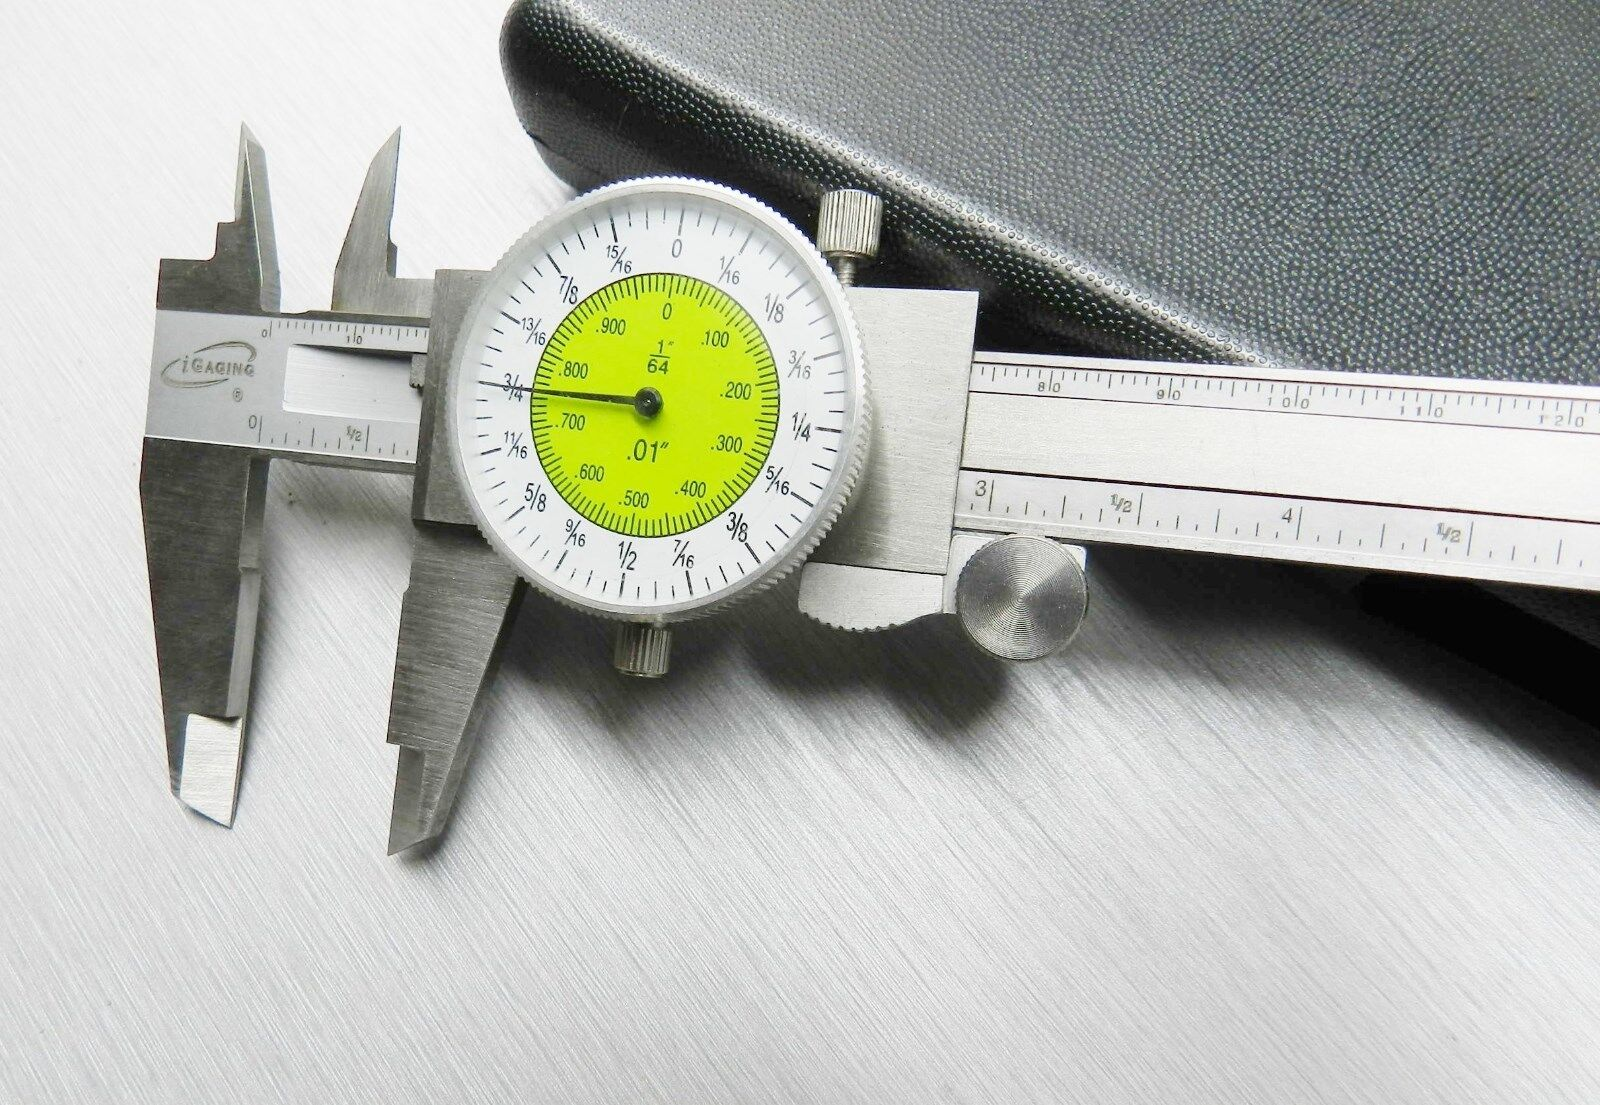 """iGaging Fractional Dial Caliper 6"""" Inside Outside Depth Guage Reads 0.01 - 1/64"""""""